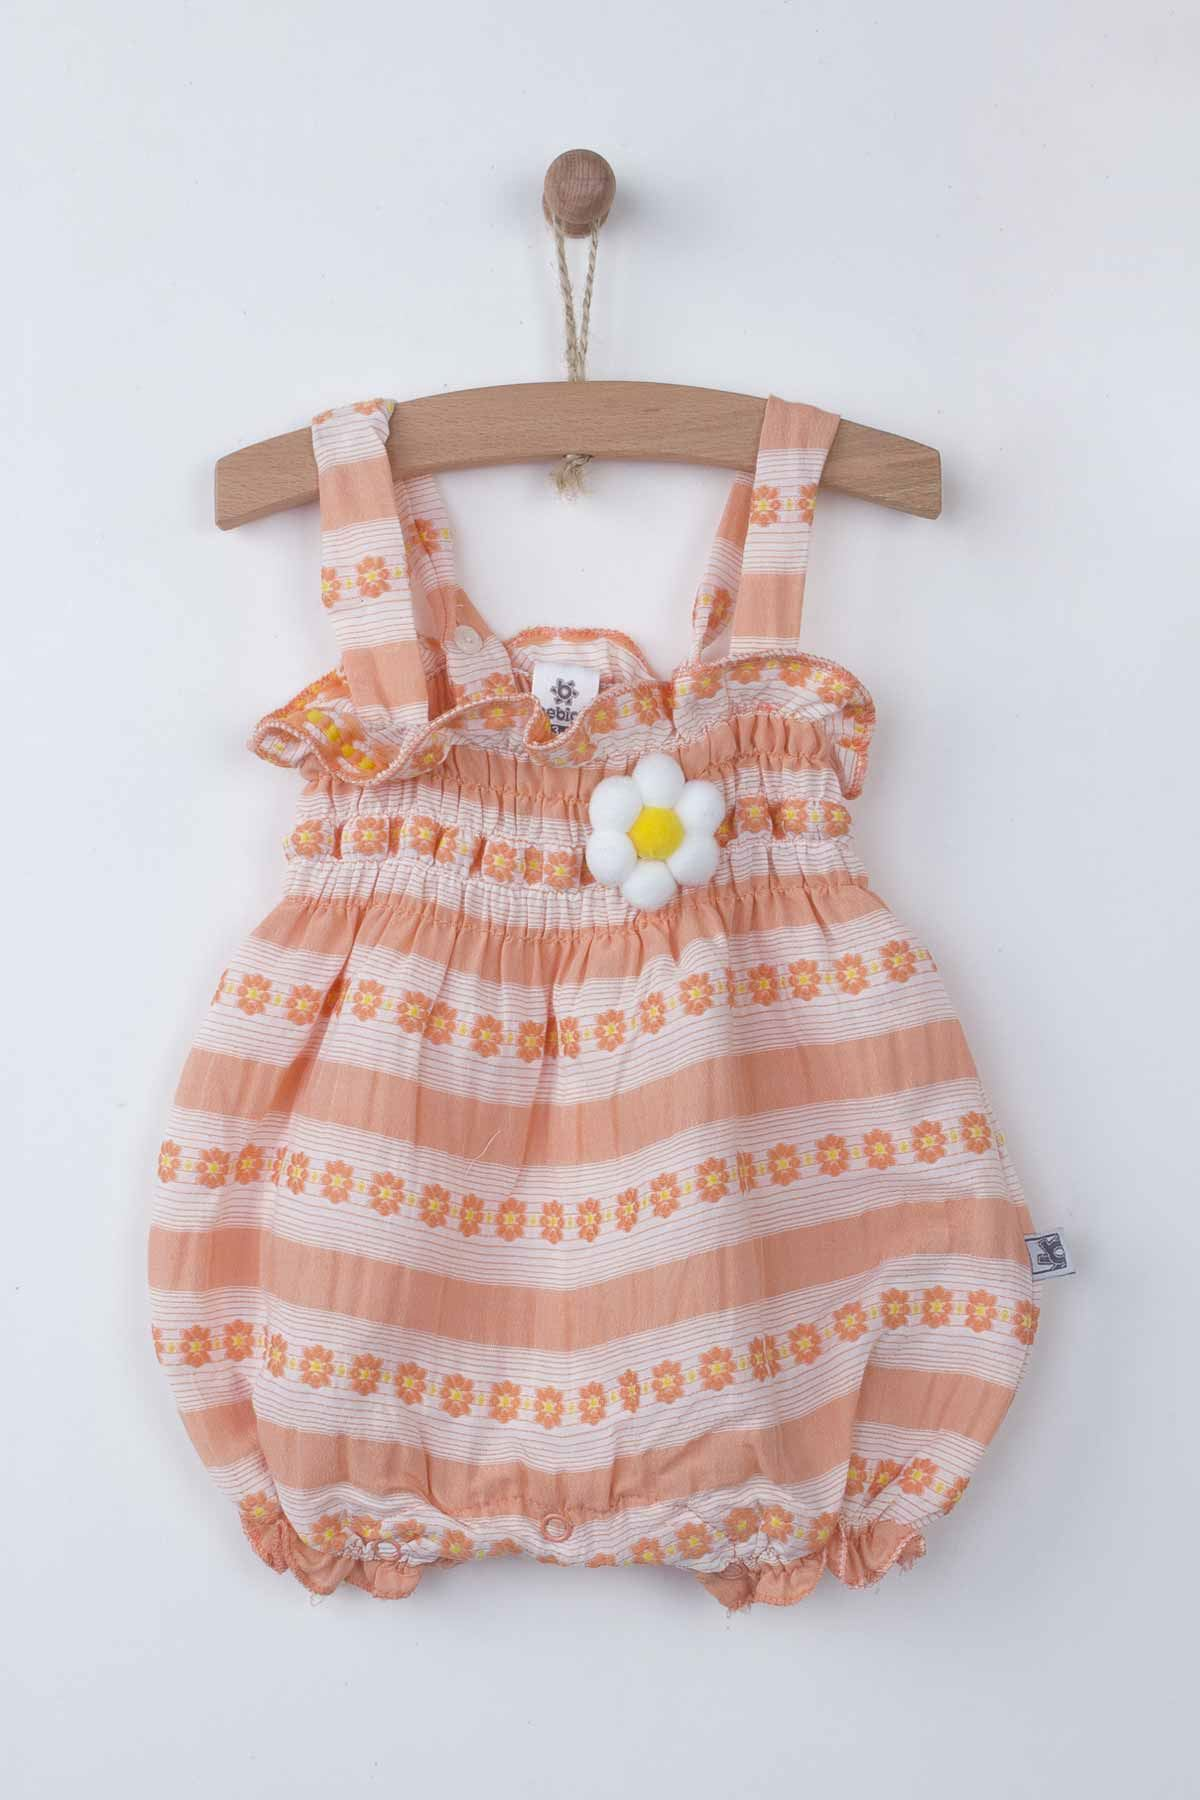 Orange Baby Girls Rompers with Hat Summer 2-piece Suit Clothes Set Jumpsuit Hat Cute Adorable Babies outfit Holiday beach Wear